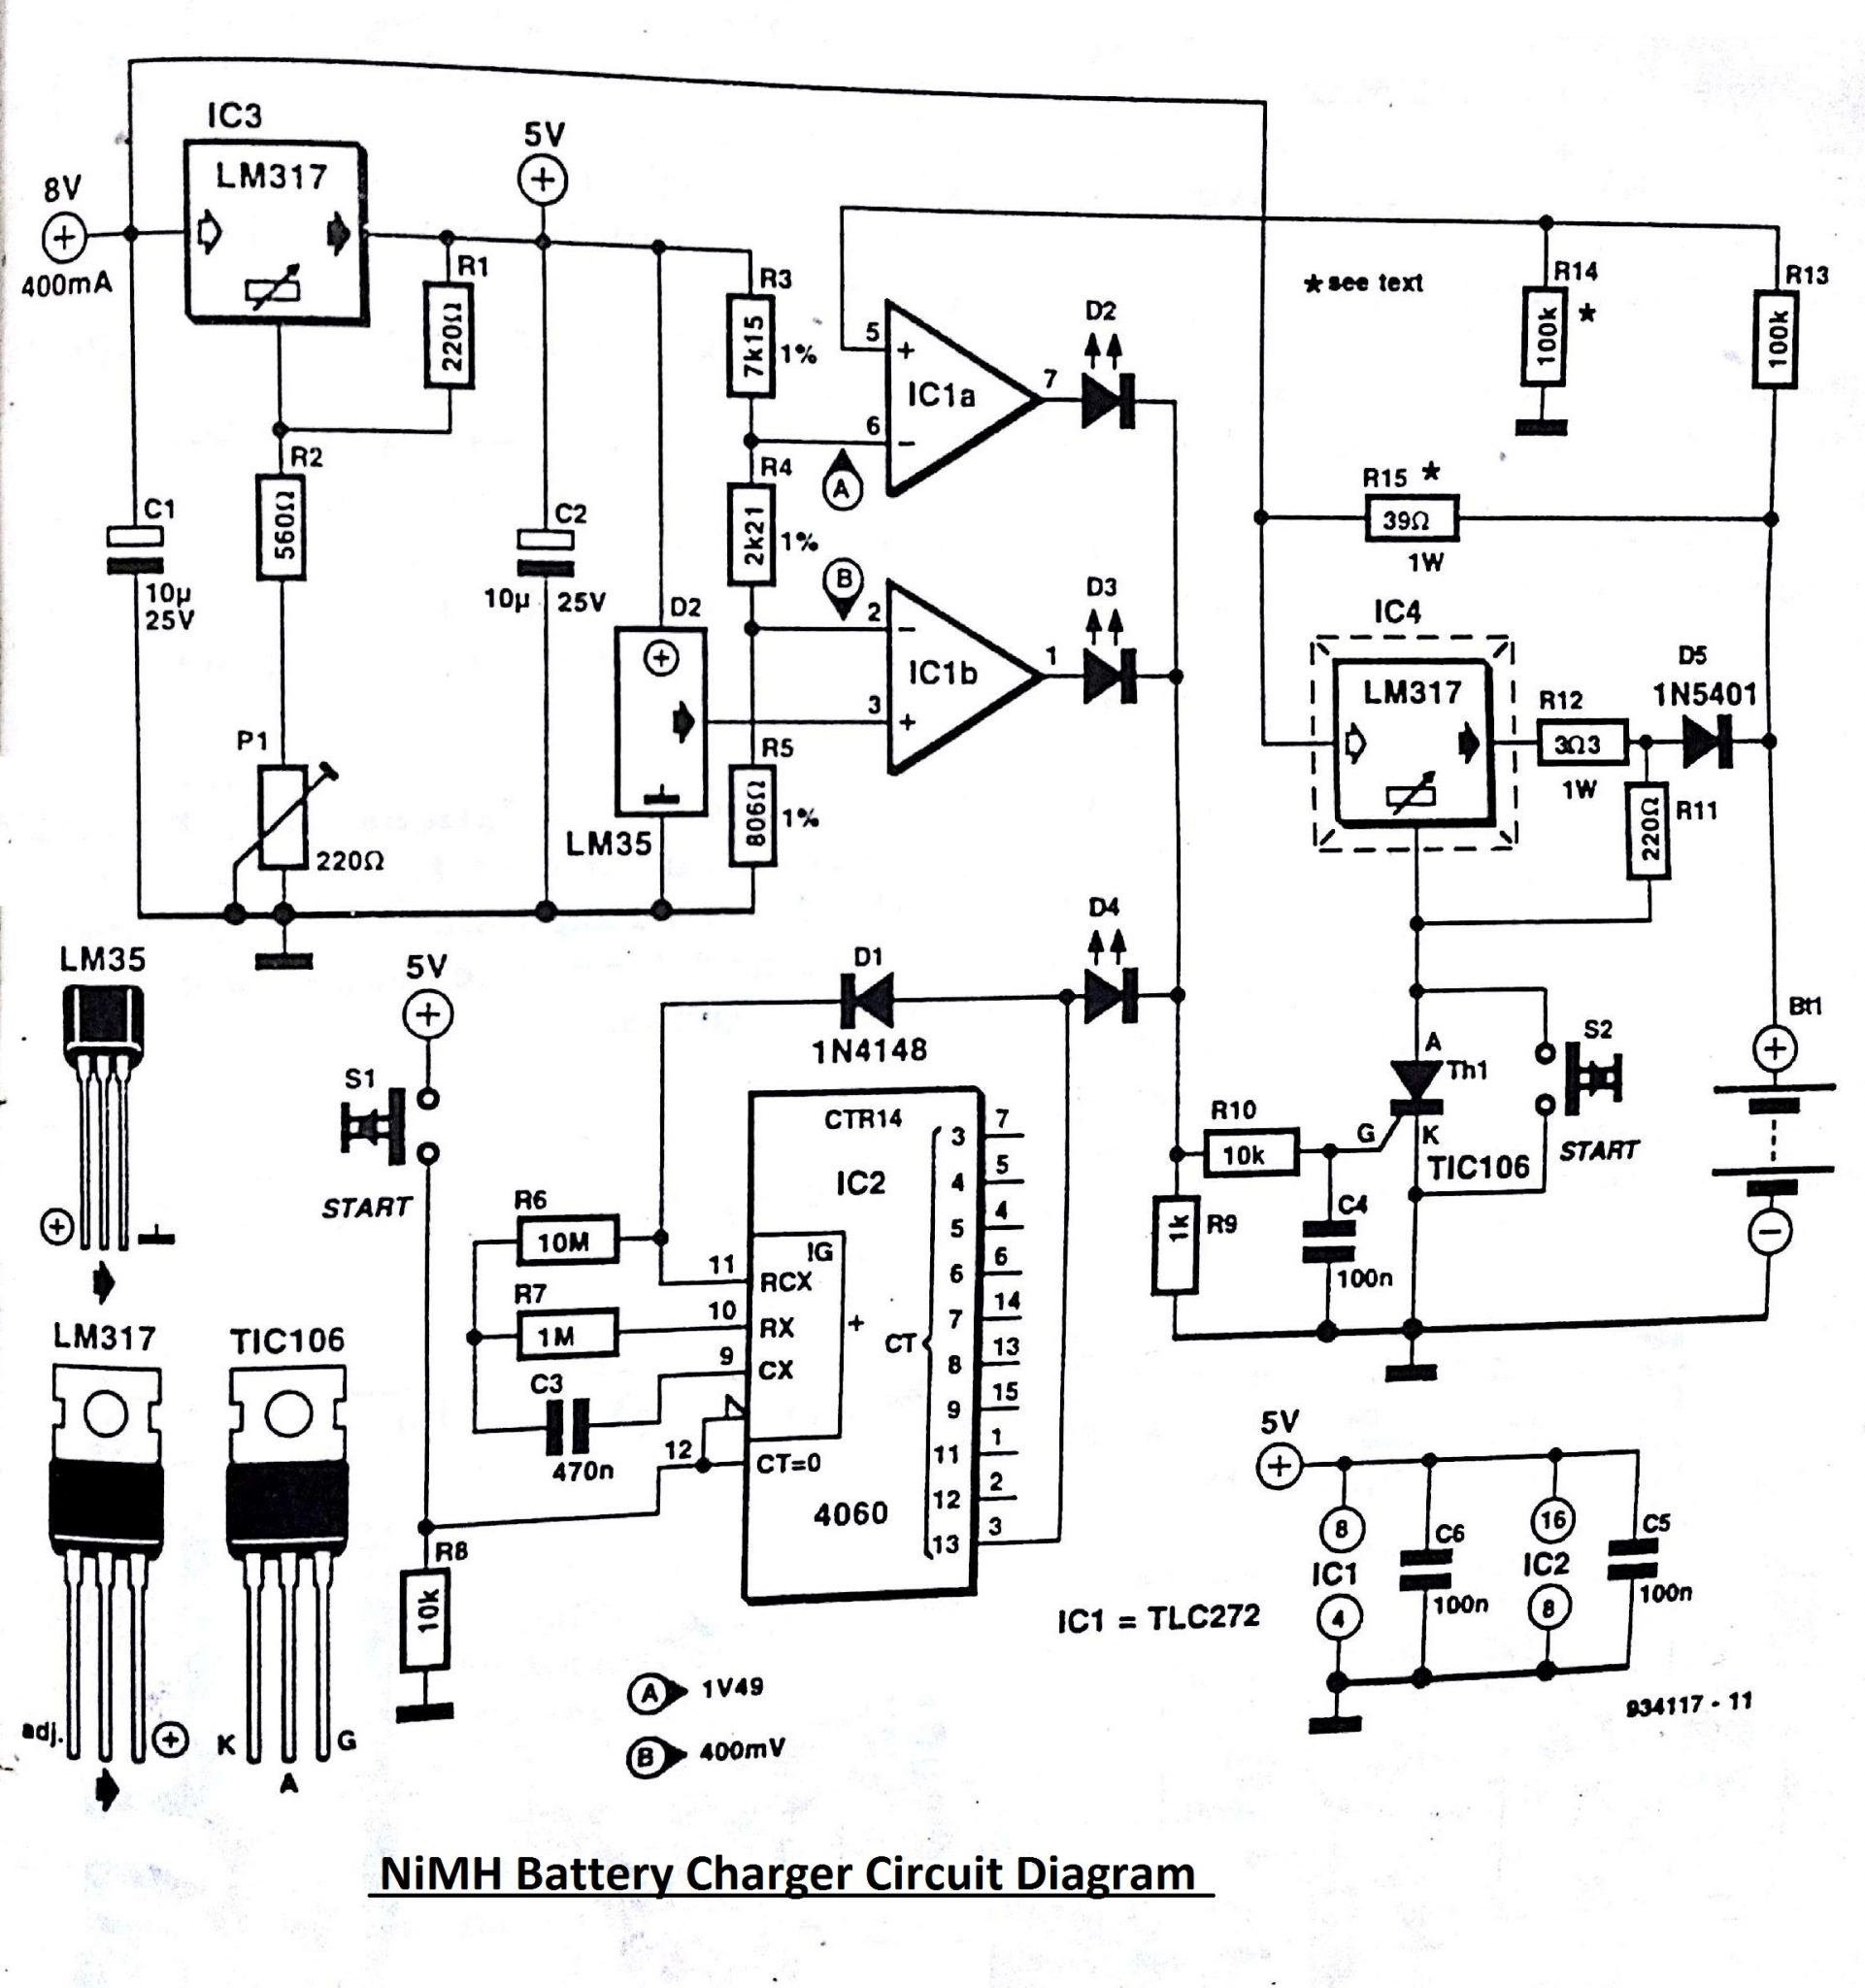 Nimh battery charger circuit diagram nimh battery charger circuit diagram ccuart Image collections